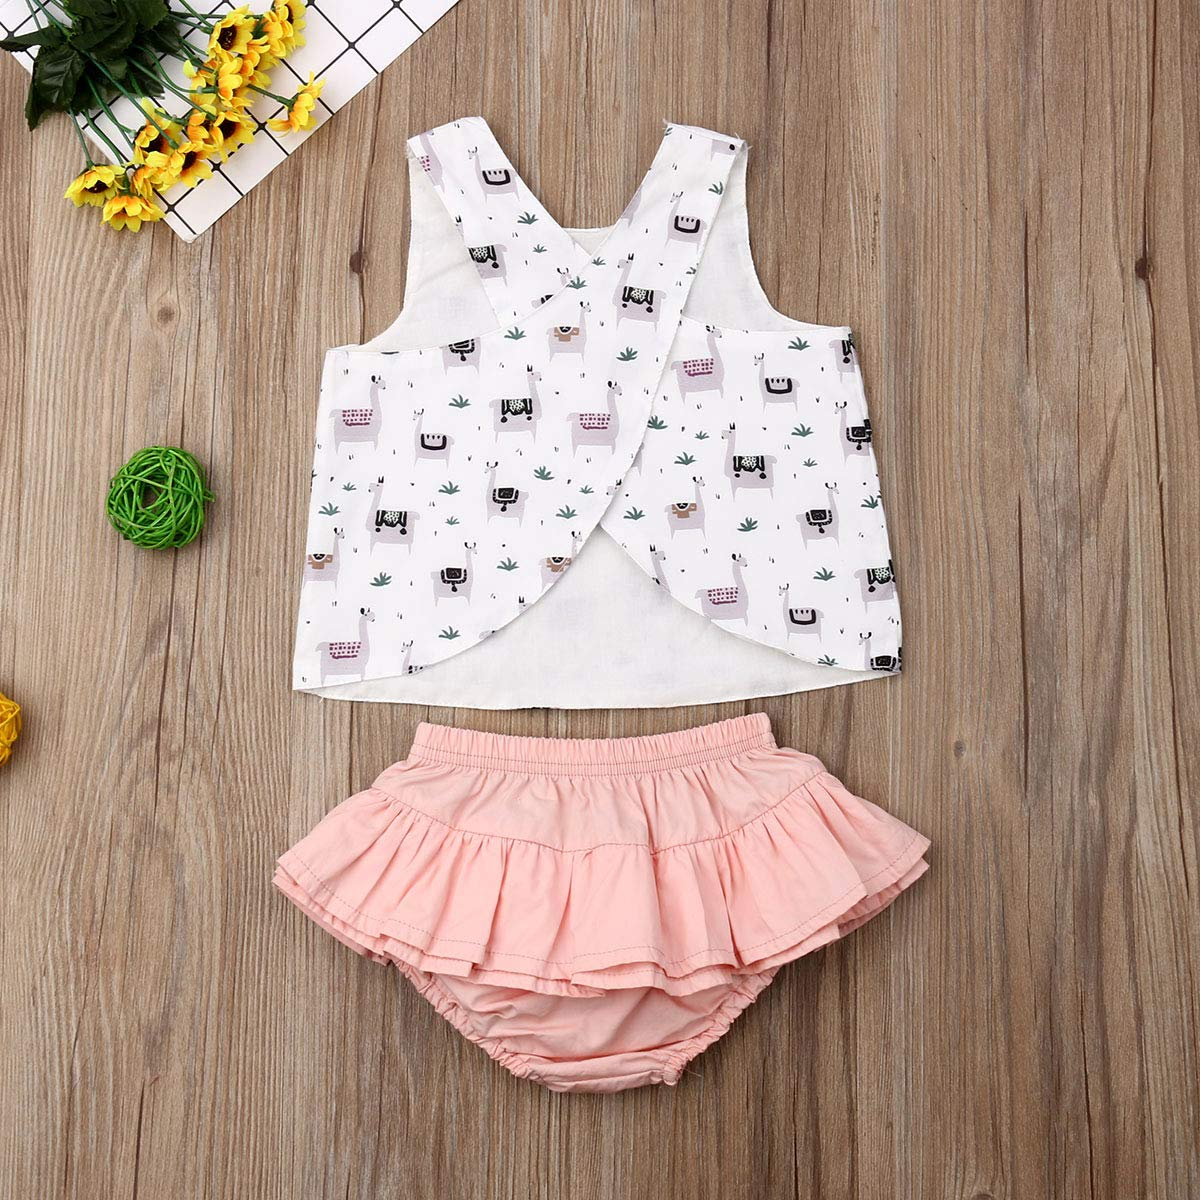 Ruffle Skirt Kids Sets for 0-3years 2Pcs Baby Girl Floral Vest Sleeveless Toddler Top